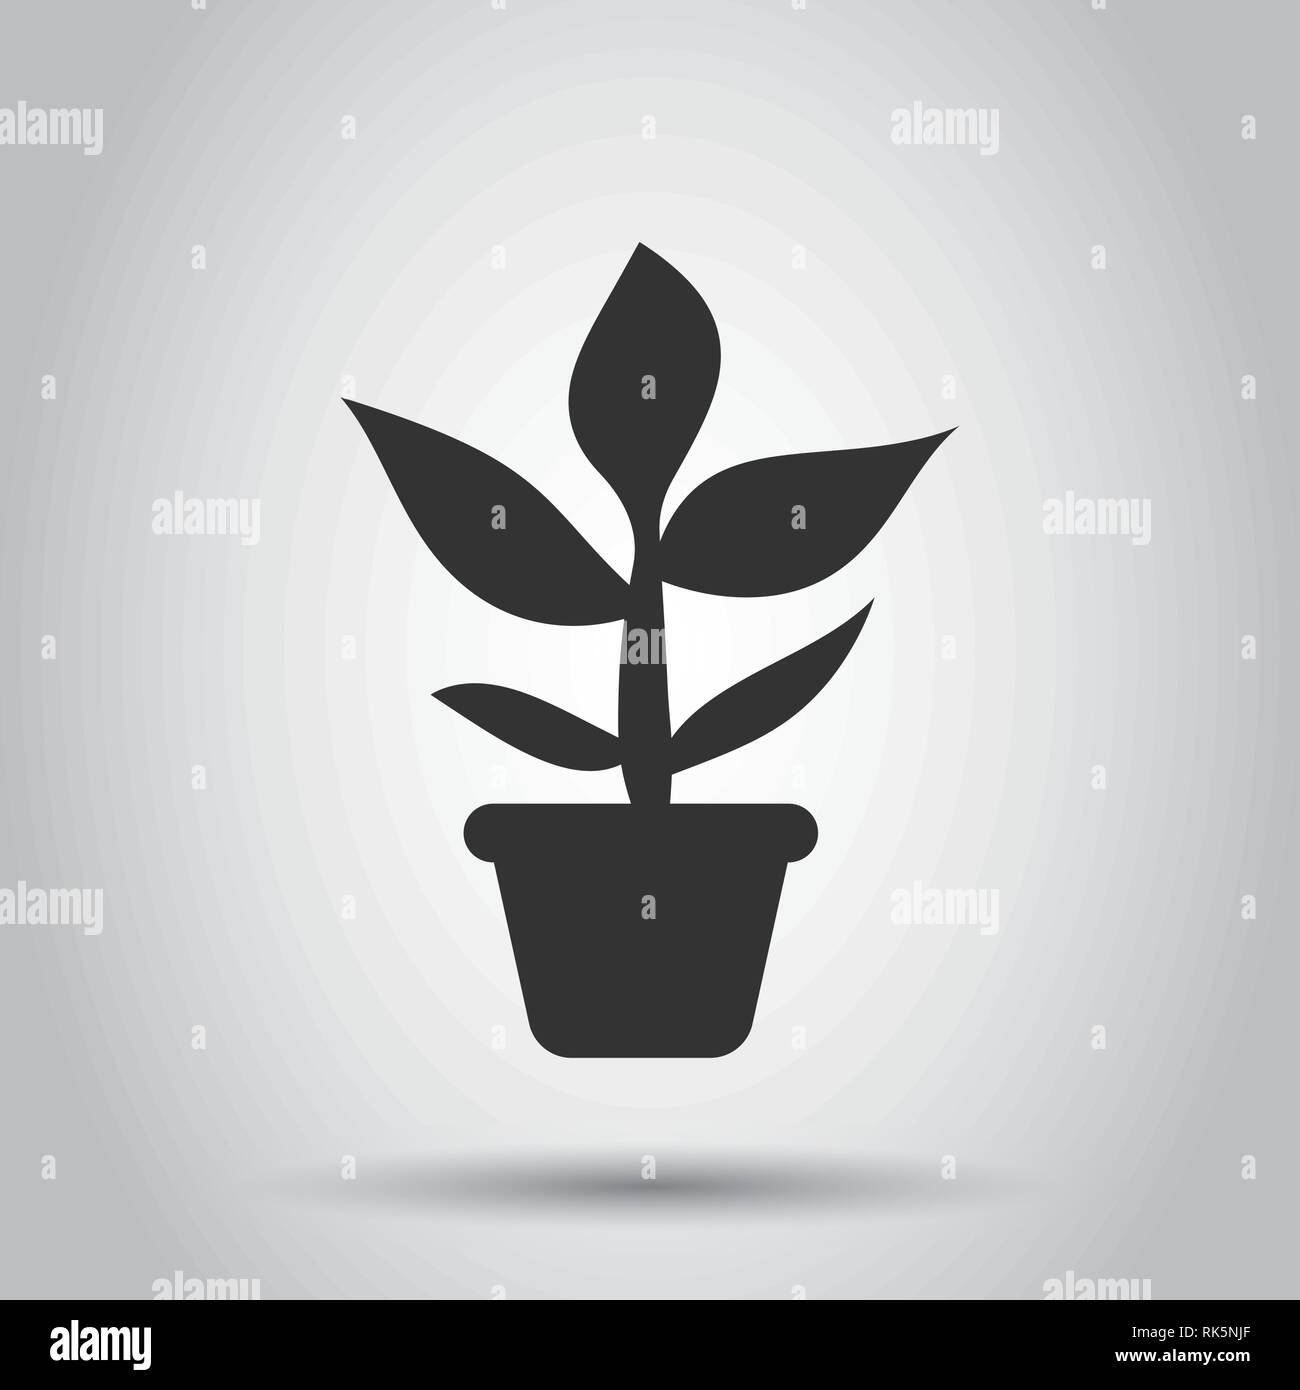 Flower pot vector icon in flat style. Seedling flower illustration on white background. Floral leaf business concept. - Stock Vector